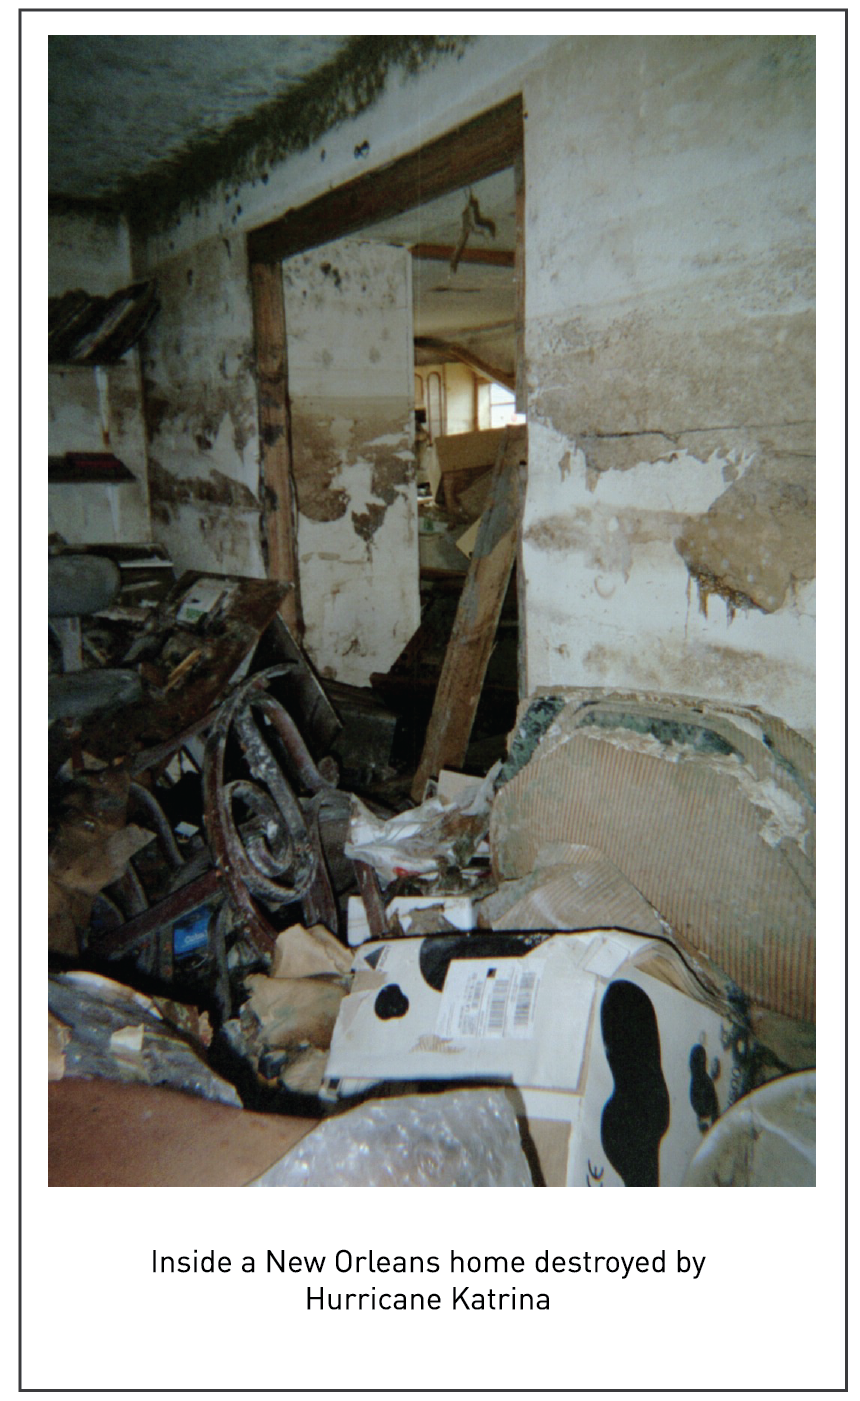 Inside a New Orleans home destroyed by Hurricane Katrina